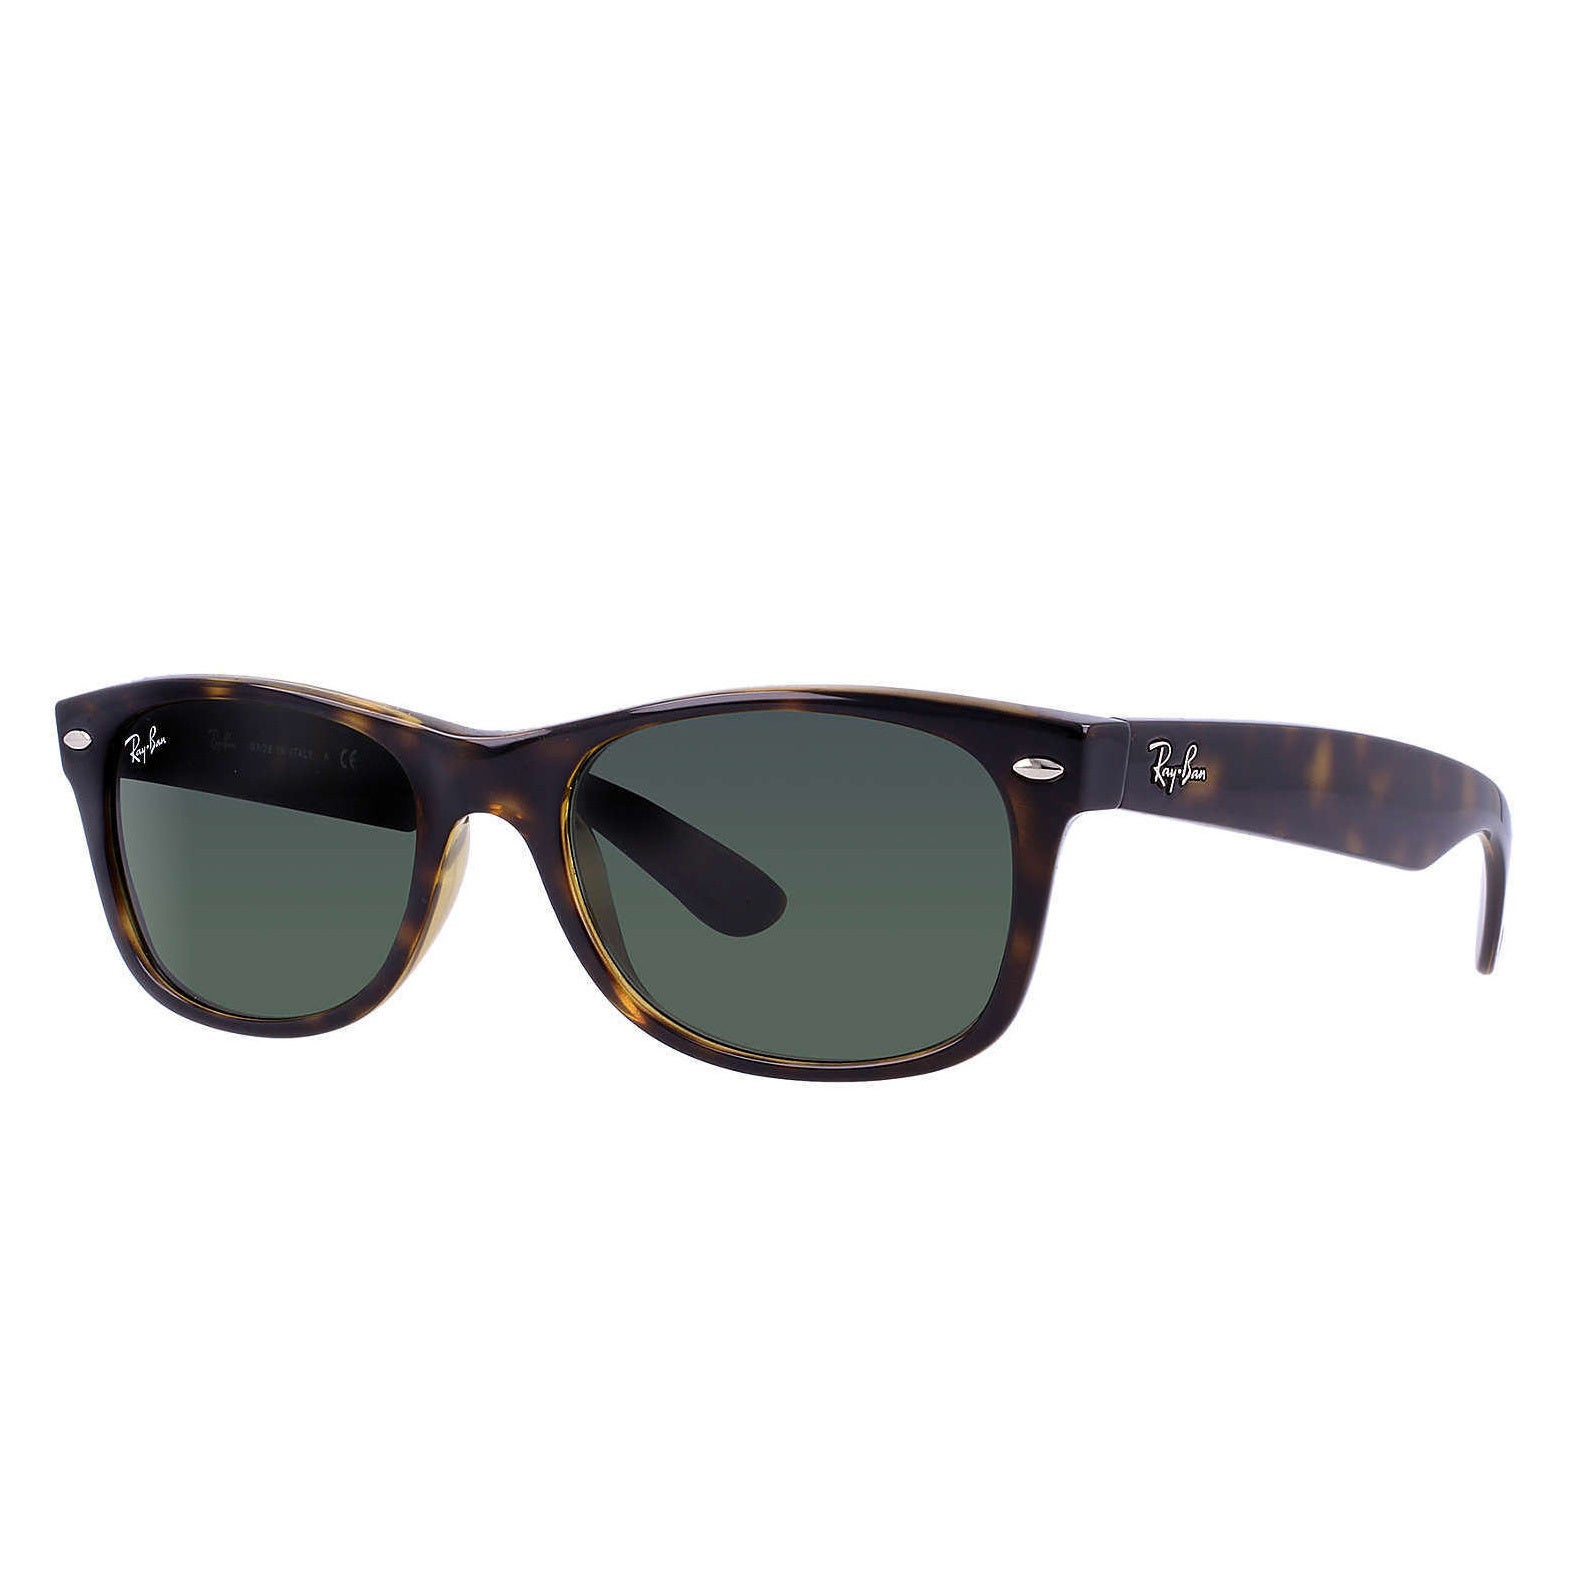 e090534f640 Men s Sunglasses